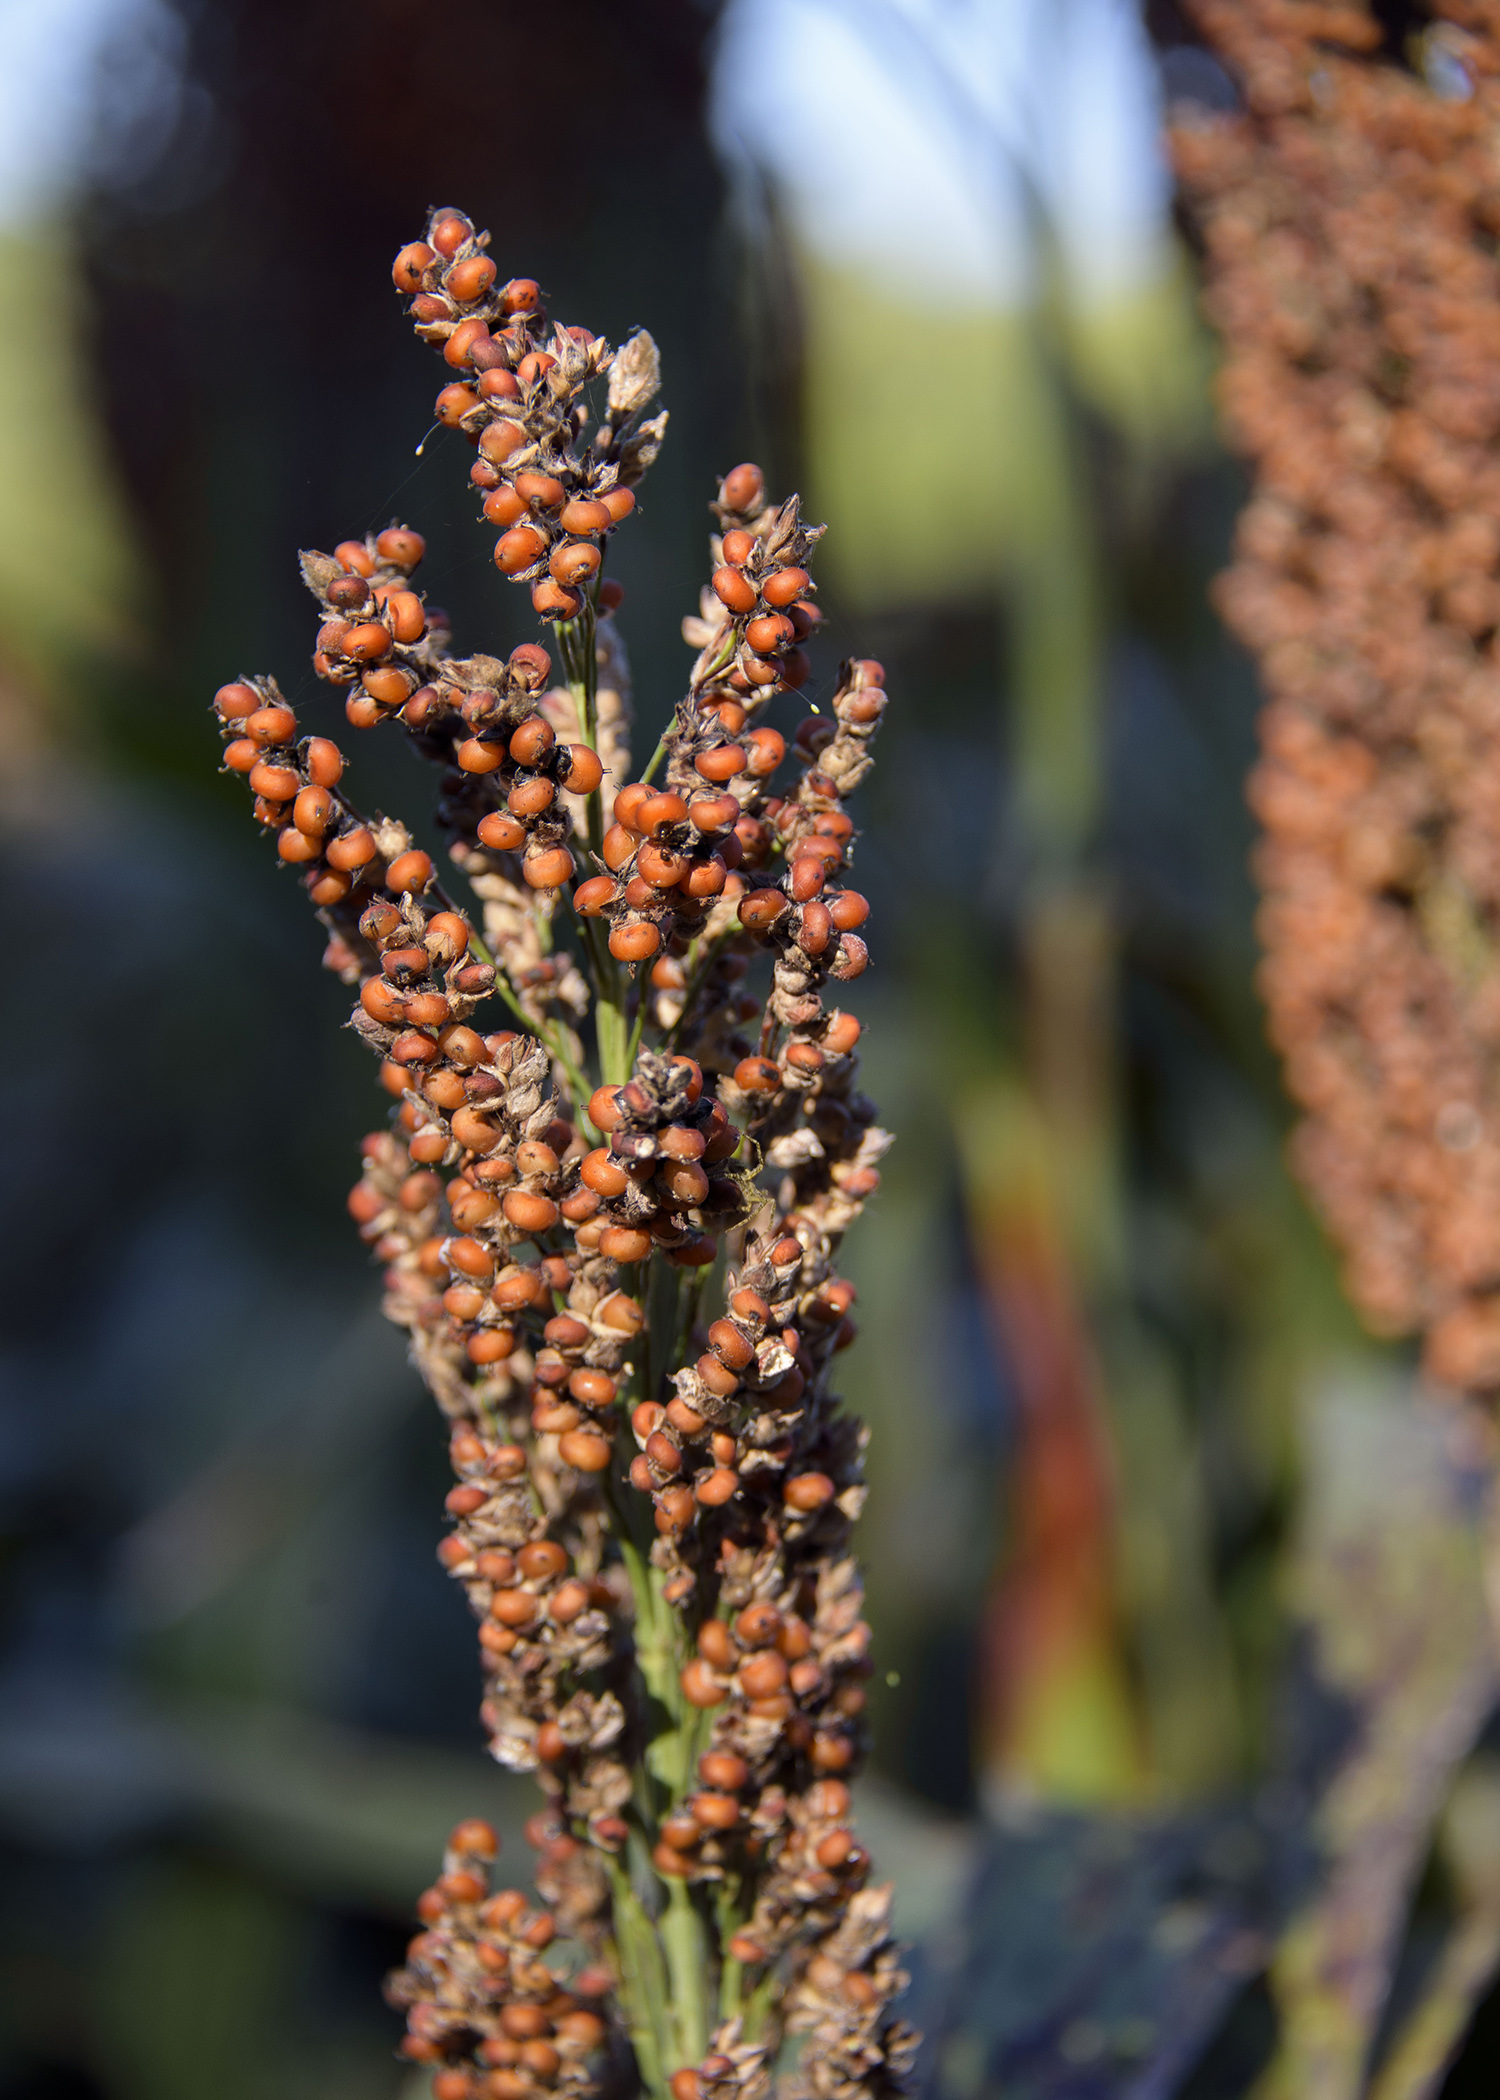 More than half of the state's grain sorghum had been harvested by mid-September. This sorghum was awaiting harvest Sept. 15, 2016 at Mississippi State University's R.R. Foil Plant Science Research Center in Starkville, Mississippi. (Photo by MSU Extension Service/Kevin Hudson)